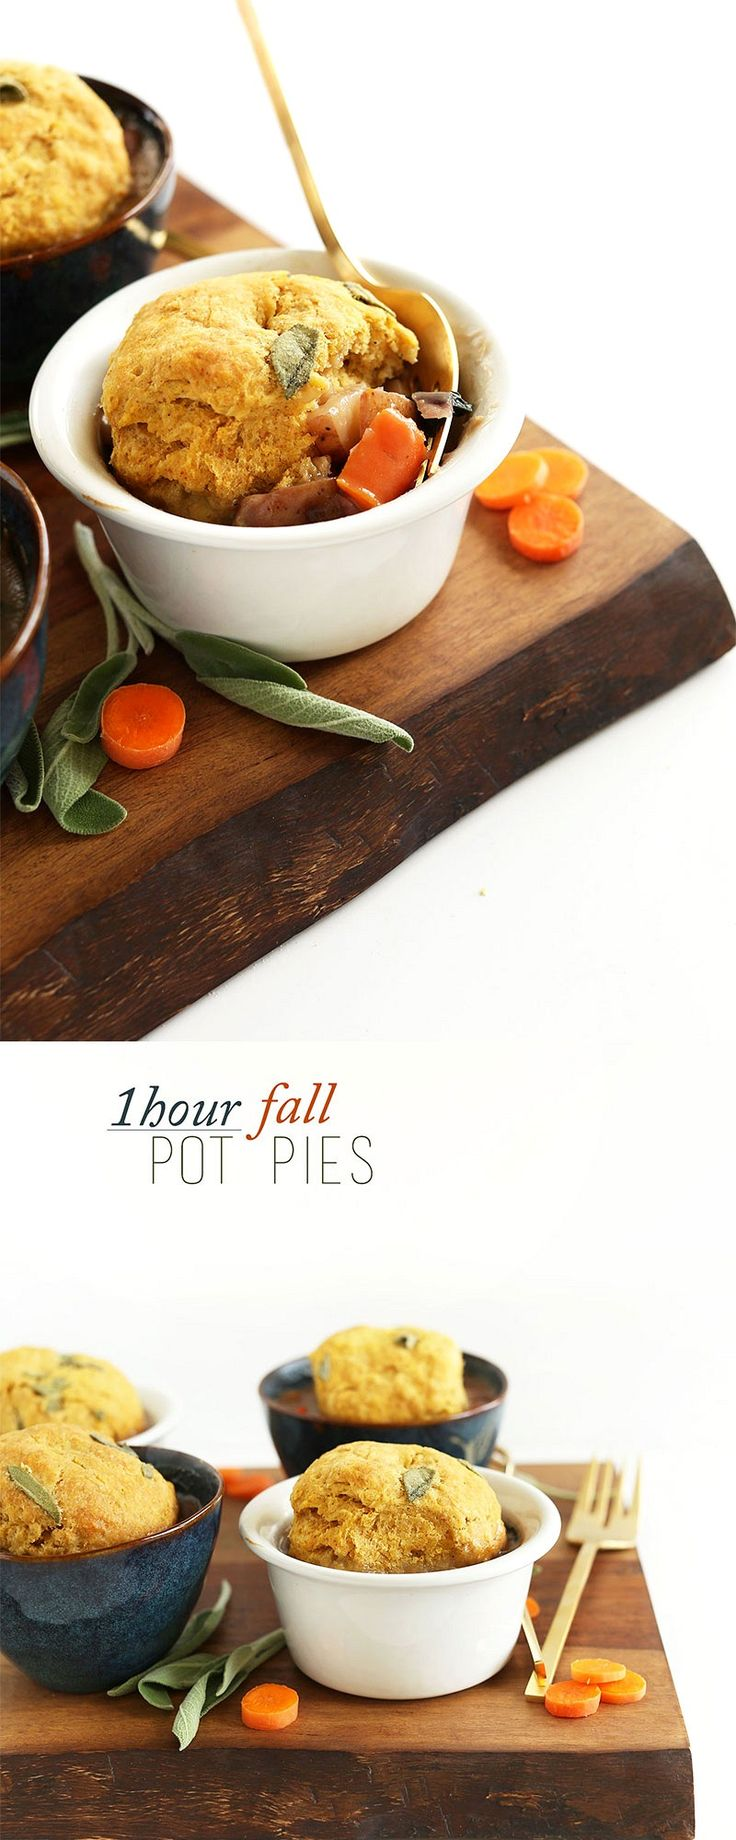 SIMPLE, 1 hour Vegan Pot Pies loaded with fall veggies and topped with PUMPKIN SAGE Biscuits! #vegan